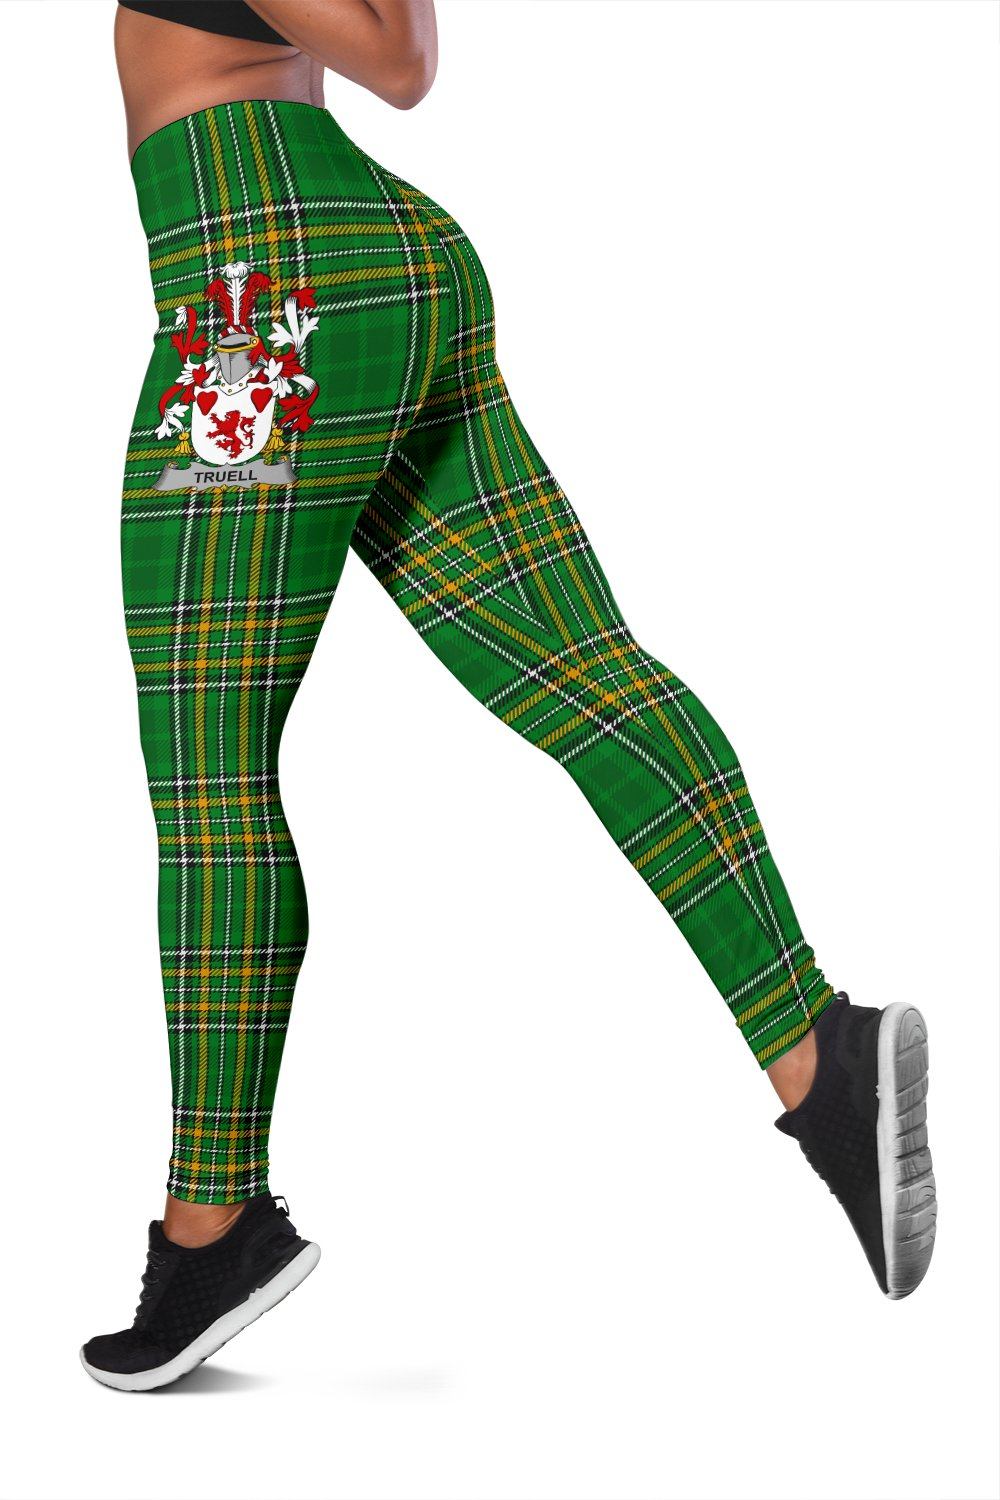 Truell Ireland Leggings Irish National Tartan | Over 1400 Crests | Clothing | Pant